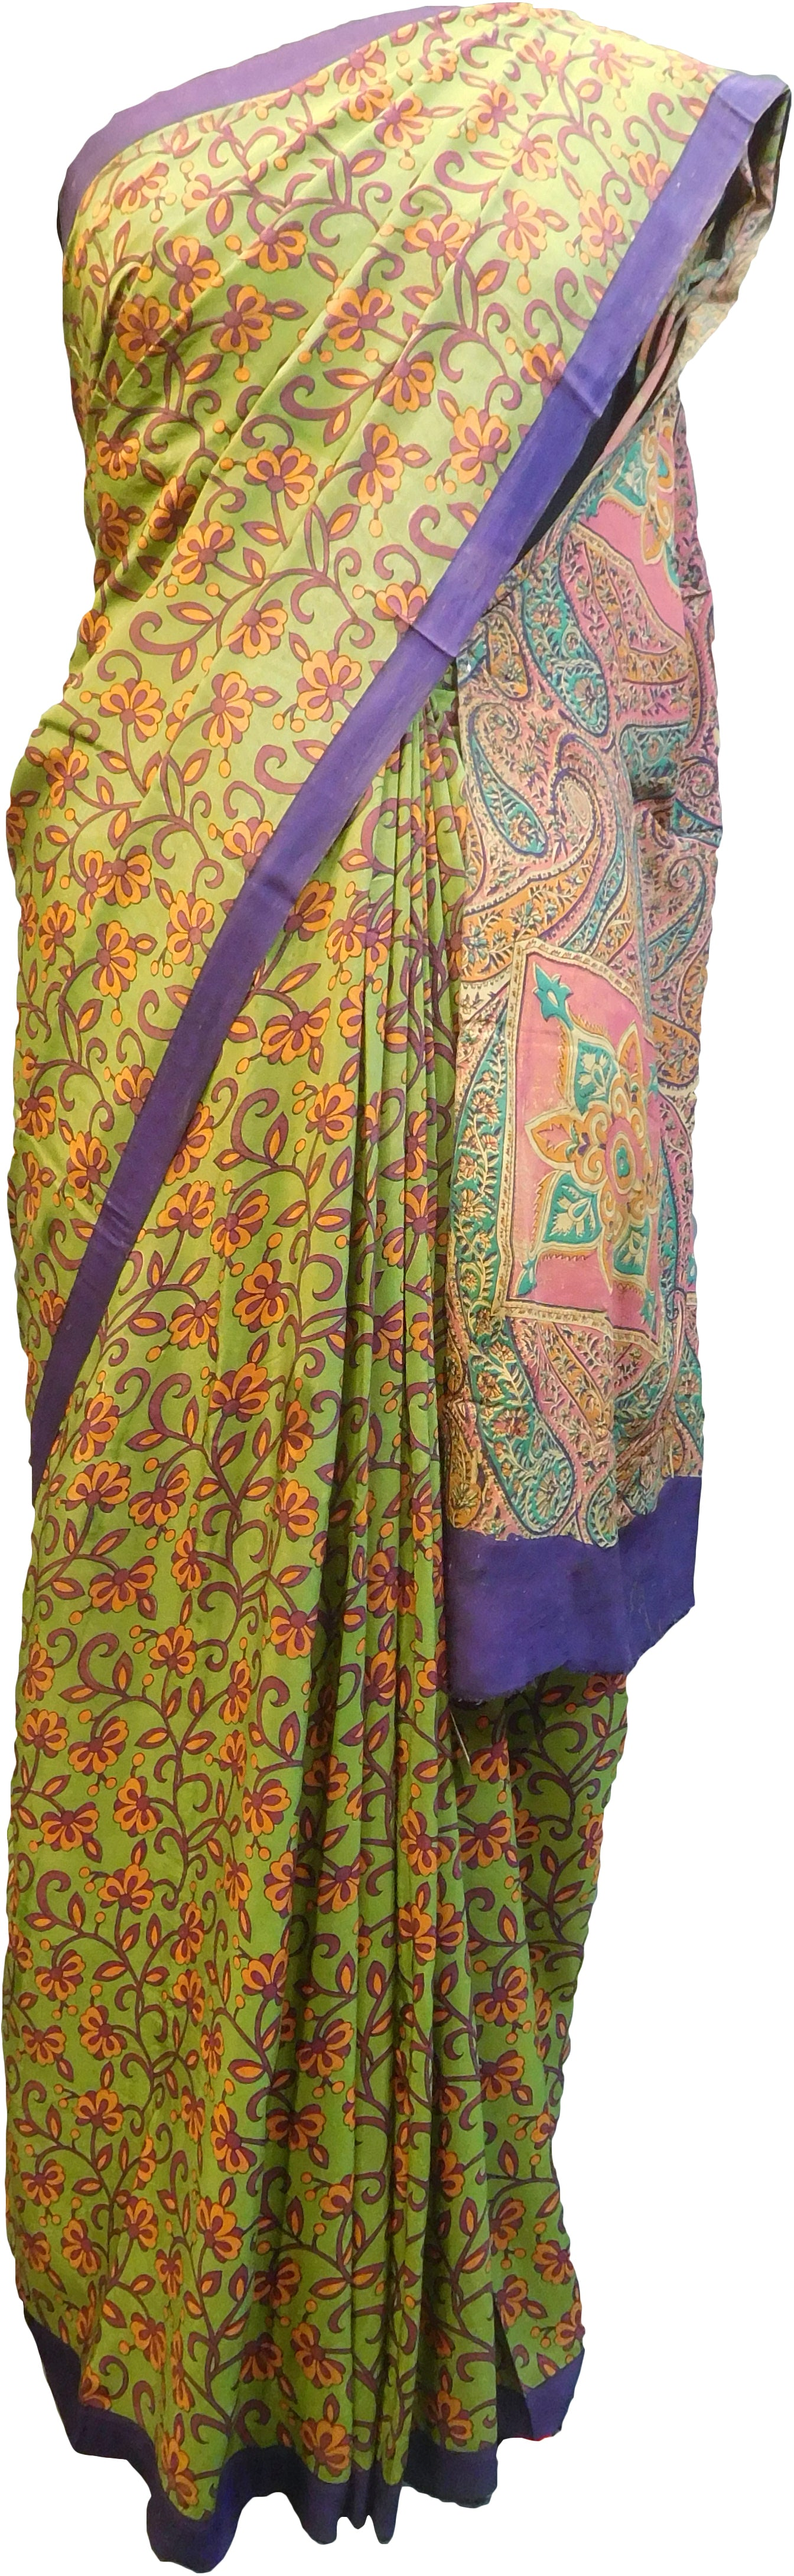 Multicolor Designer Wedding Partywear Pure Crepe Hand Brush Reprinted Kolkata Saree Sari RP254